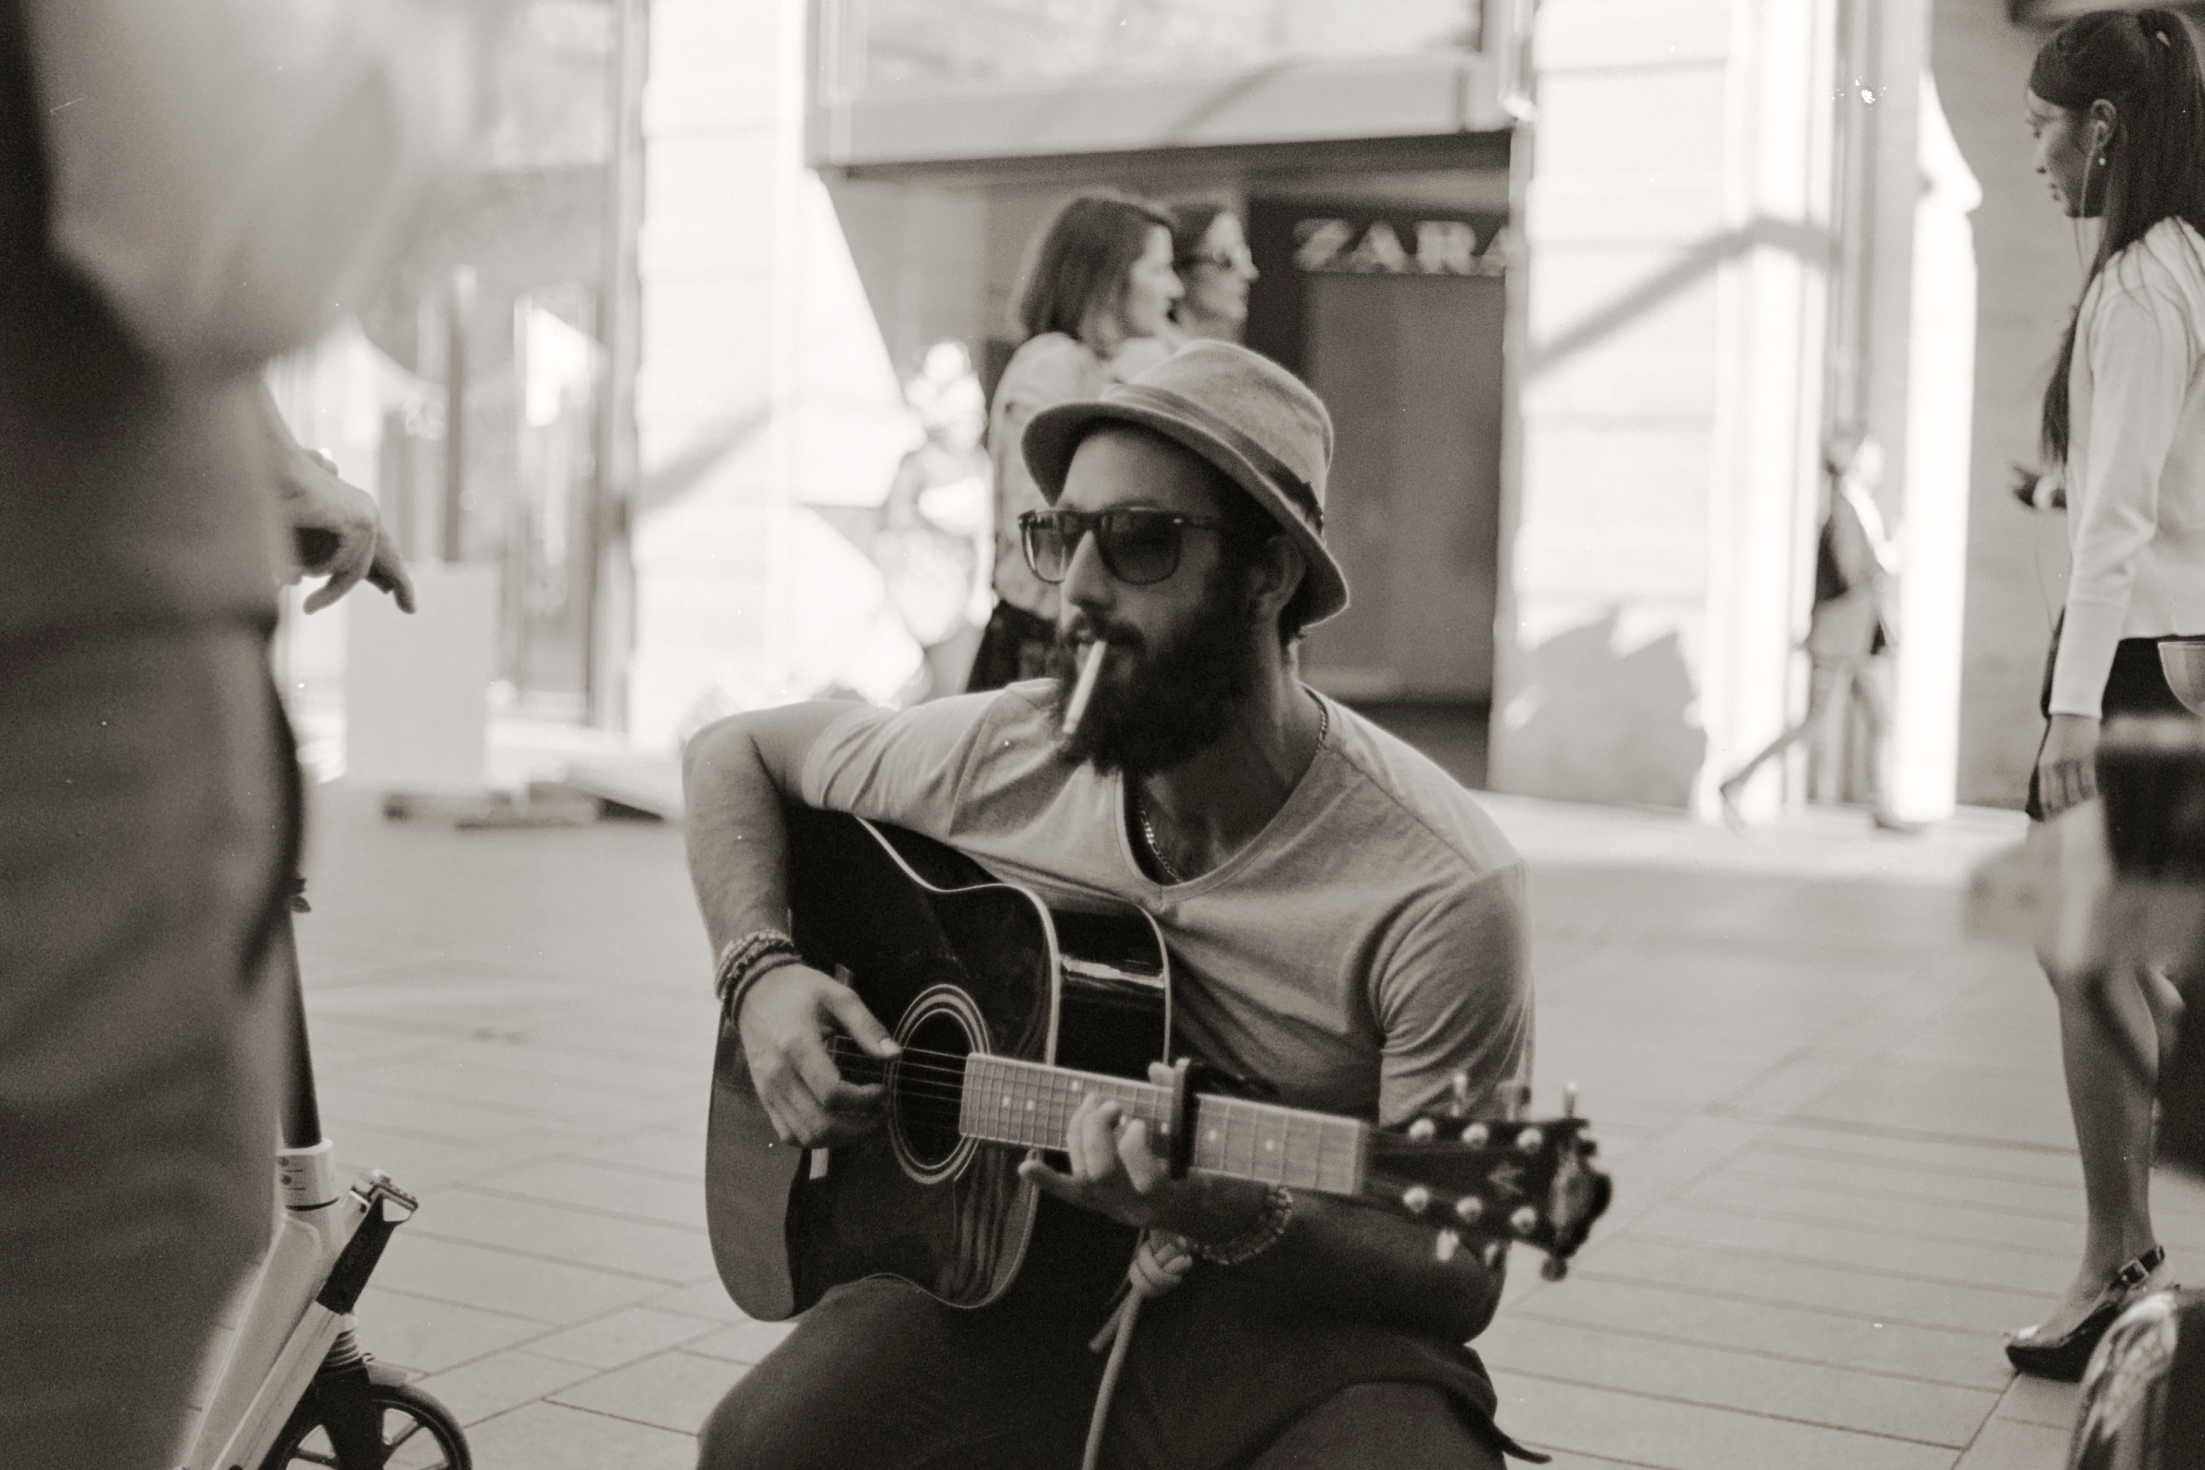 Guillaume playing my guitar between customers.